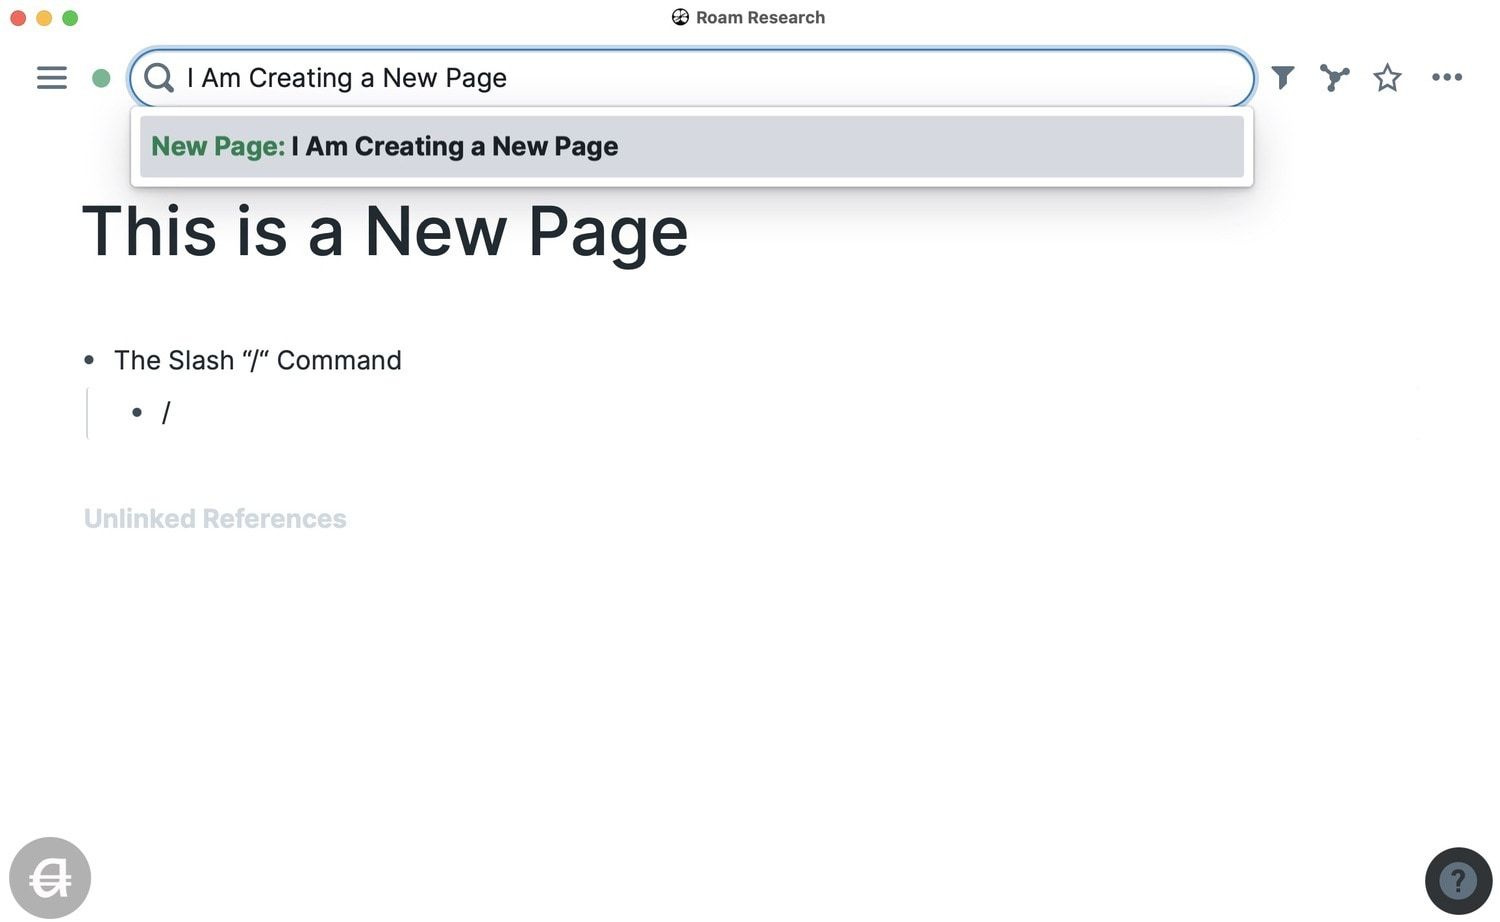 Creating a New Page in Roam Research